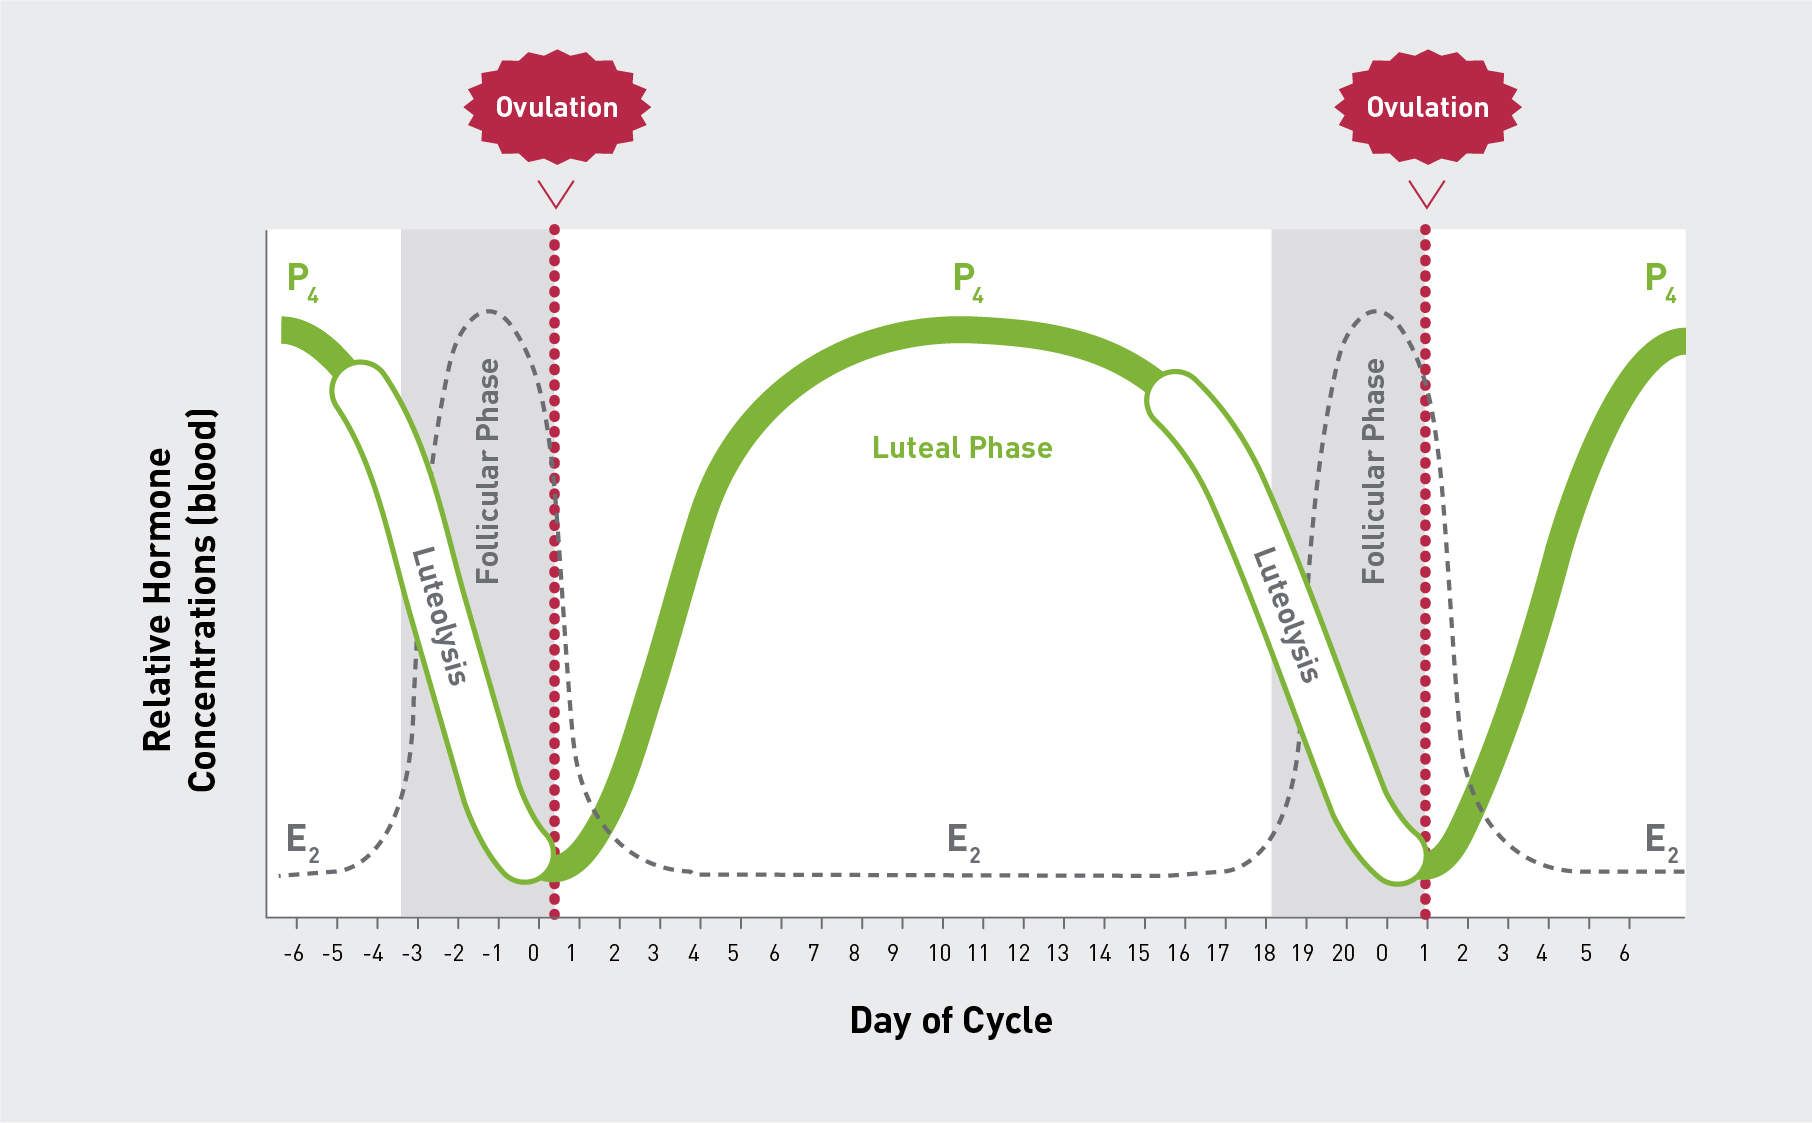 figure 2: basic description of the oestrous cycle of the cow